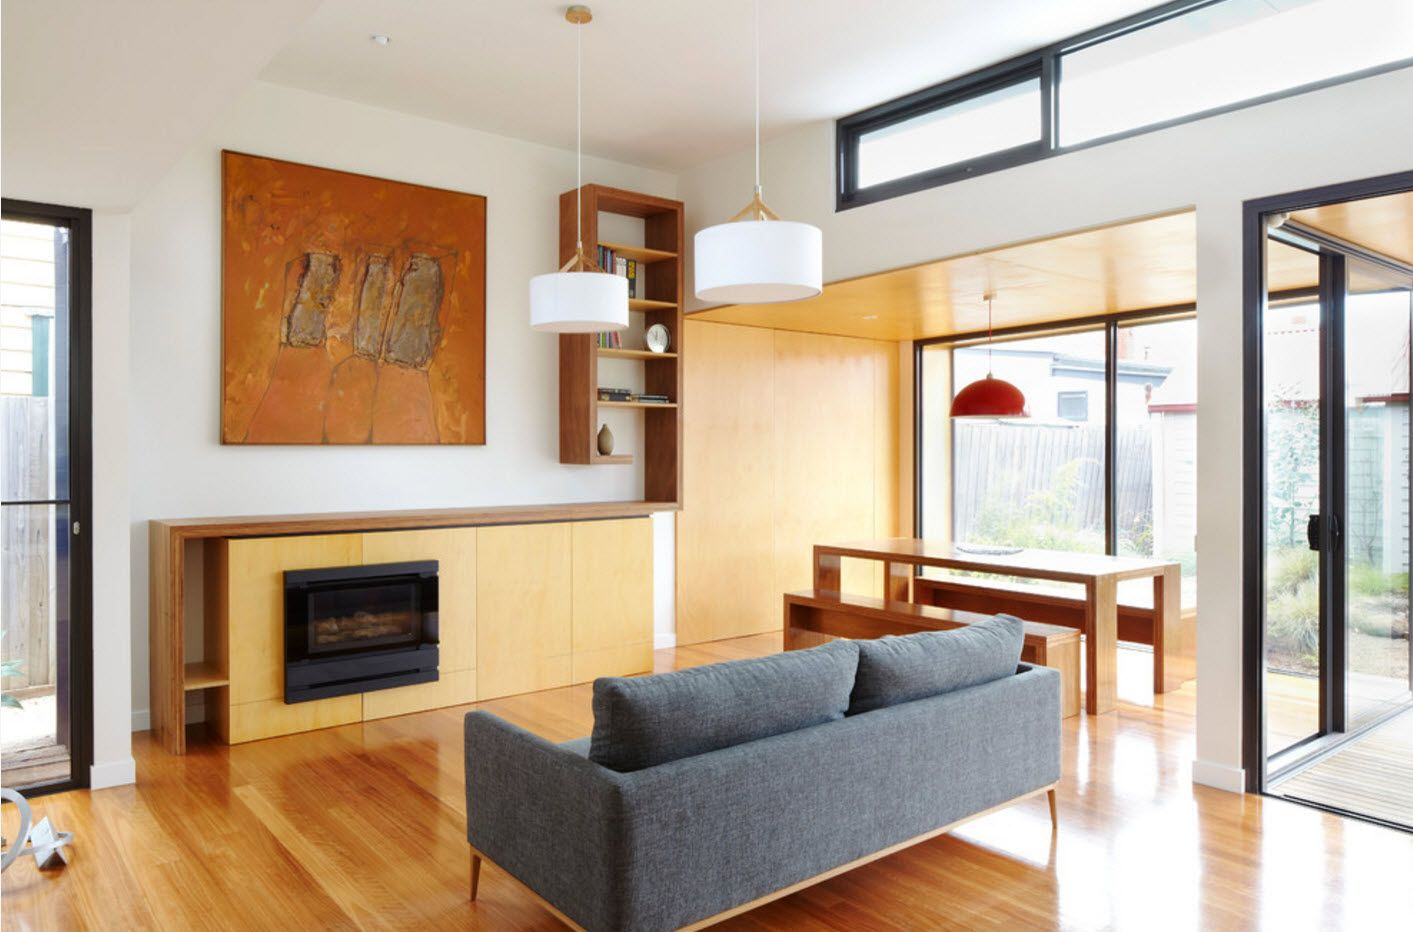 Modern light wooden design for living room